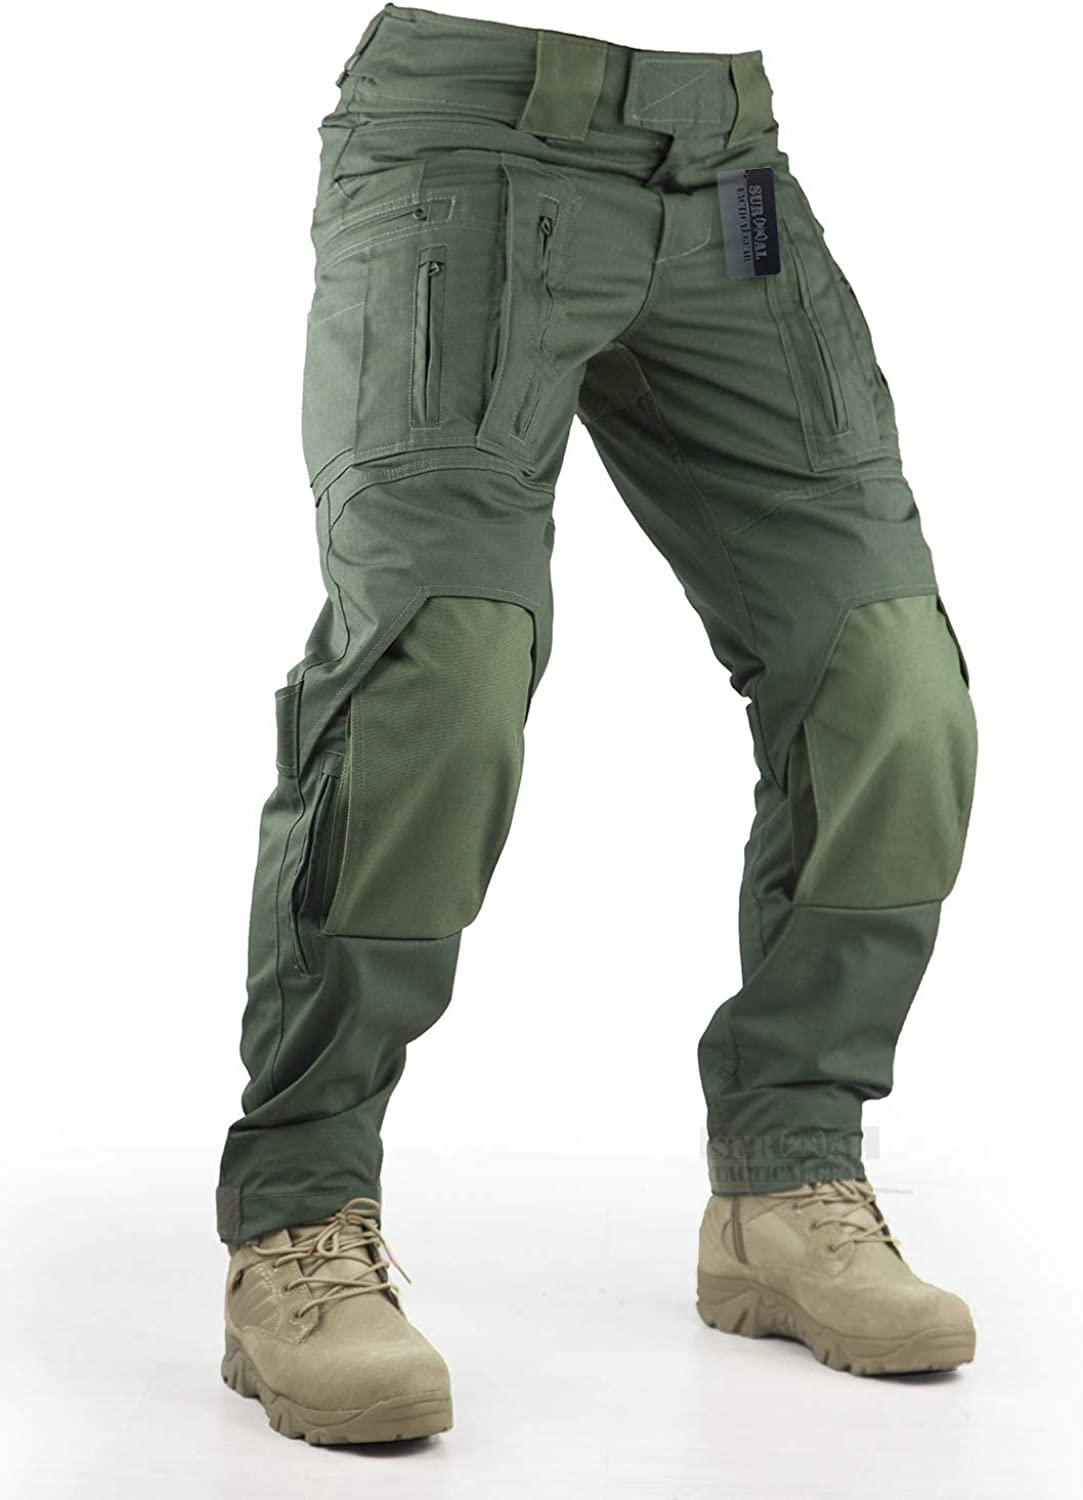 Survival Tactical Gear Pants with Paintball Ai Pads Knee Max 80% Price reduction OFF Hunting